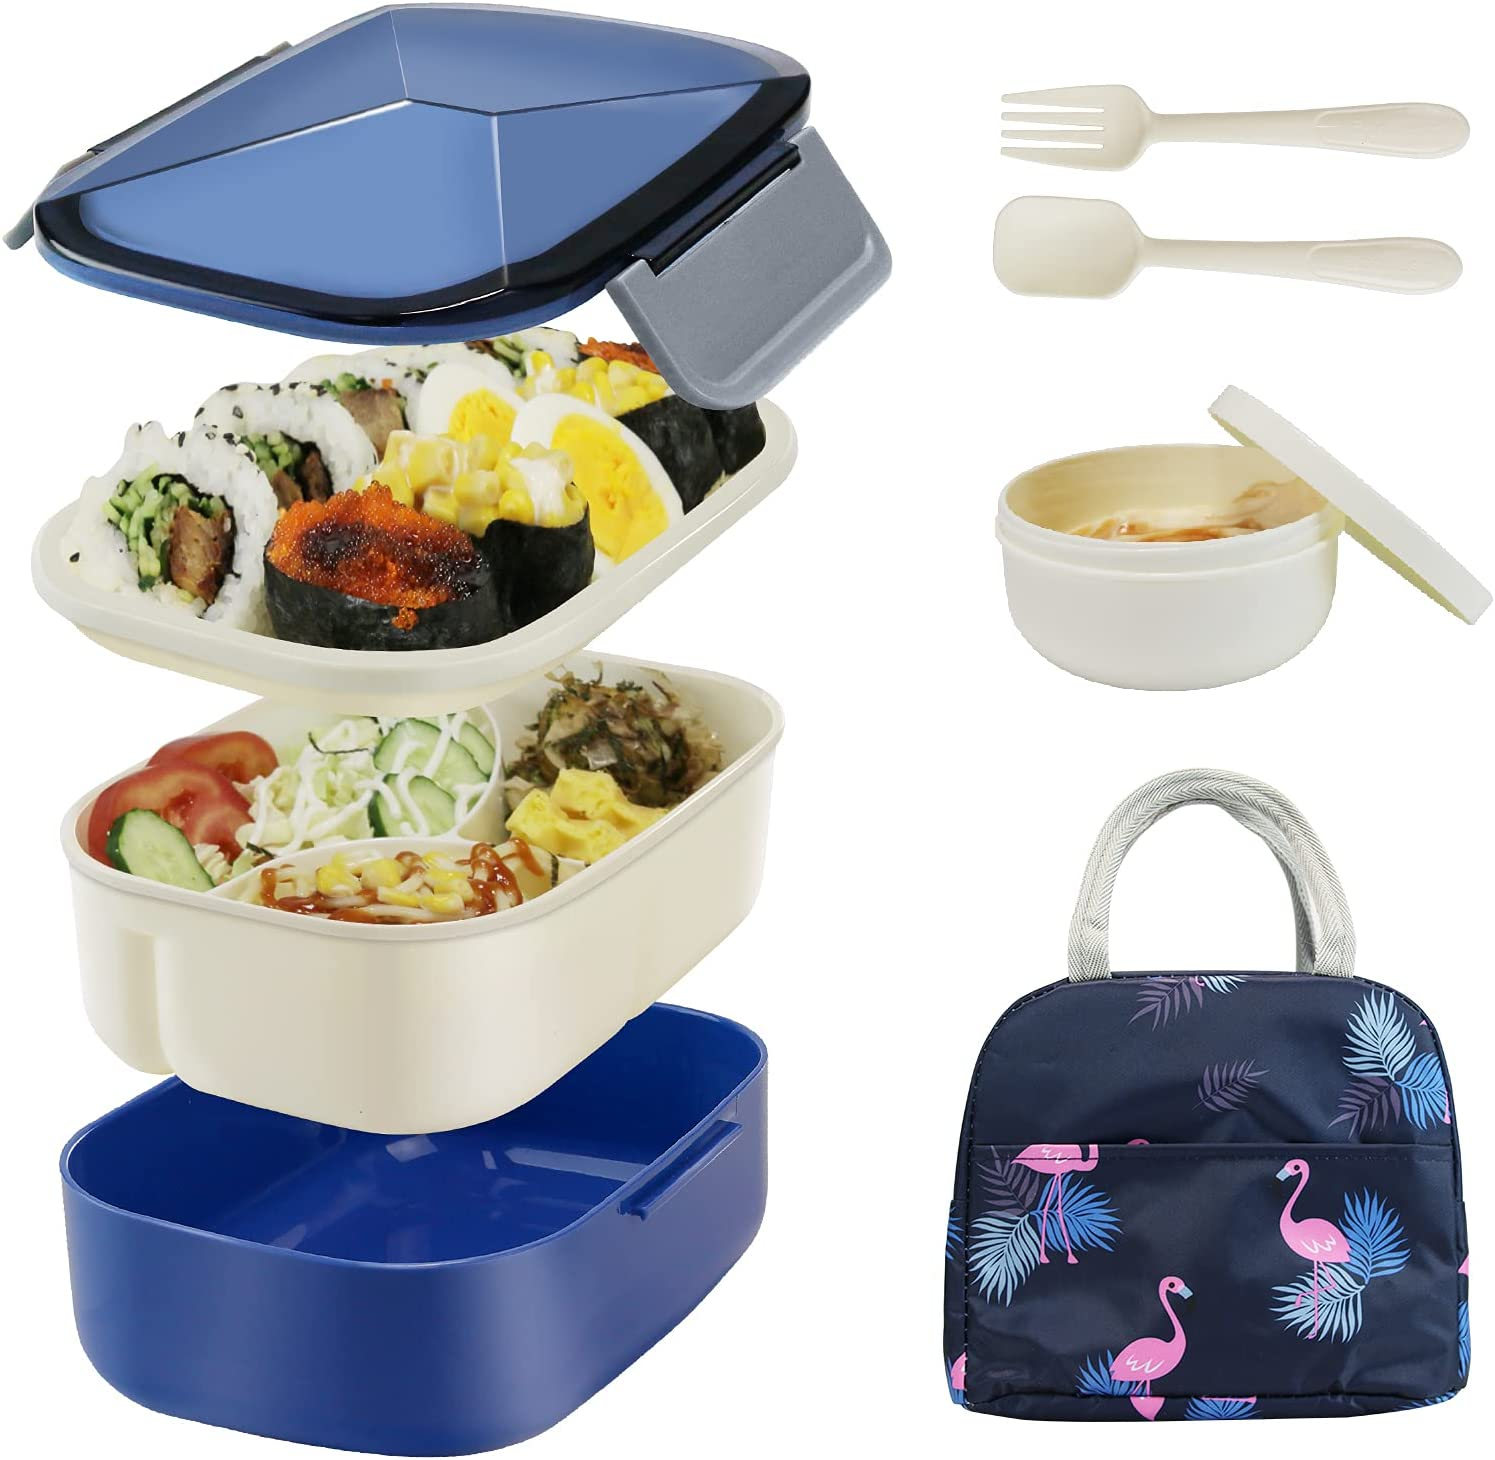 Bestjing Bento Lunch box for Adults, 54.1oz BPA Free Bento Box, 2 Tier &3 Compartment Design Food Containers for Lunch &Snacks, Built-in Utensil &Sauce Cup, Bundled with Insulated Lunch Bag(Dark Blue)